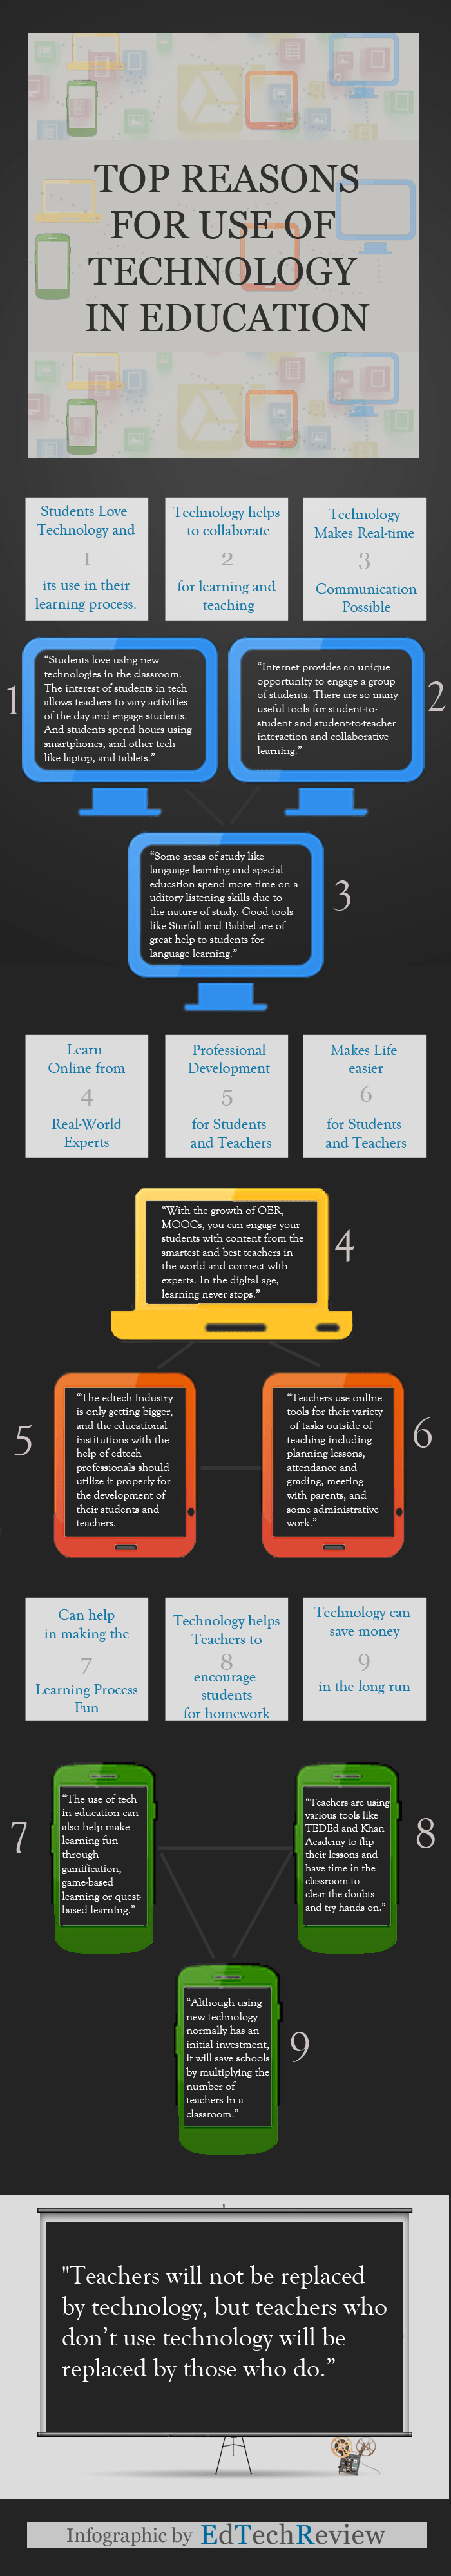 https://i1.wp.com/edtechreview.in/images/Daily/Insight/Reasons_for_Use_of_Technology_in_Education.png